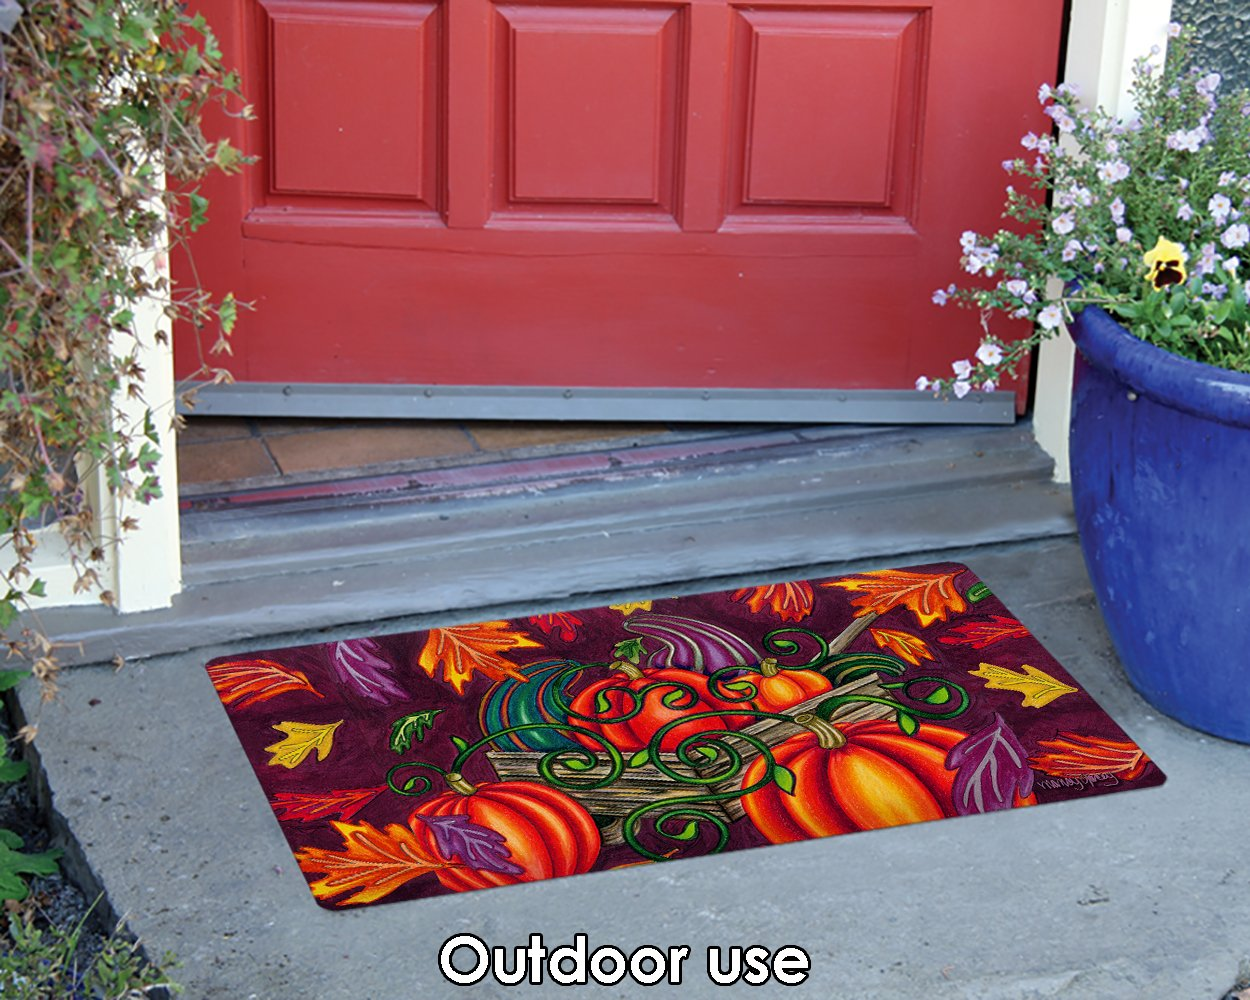 Toland Home Garden 800406 Fall Gourds Doormat 18 x 30 Multicolor